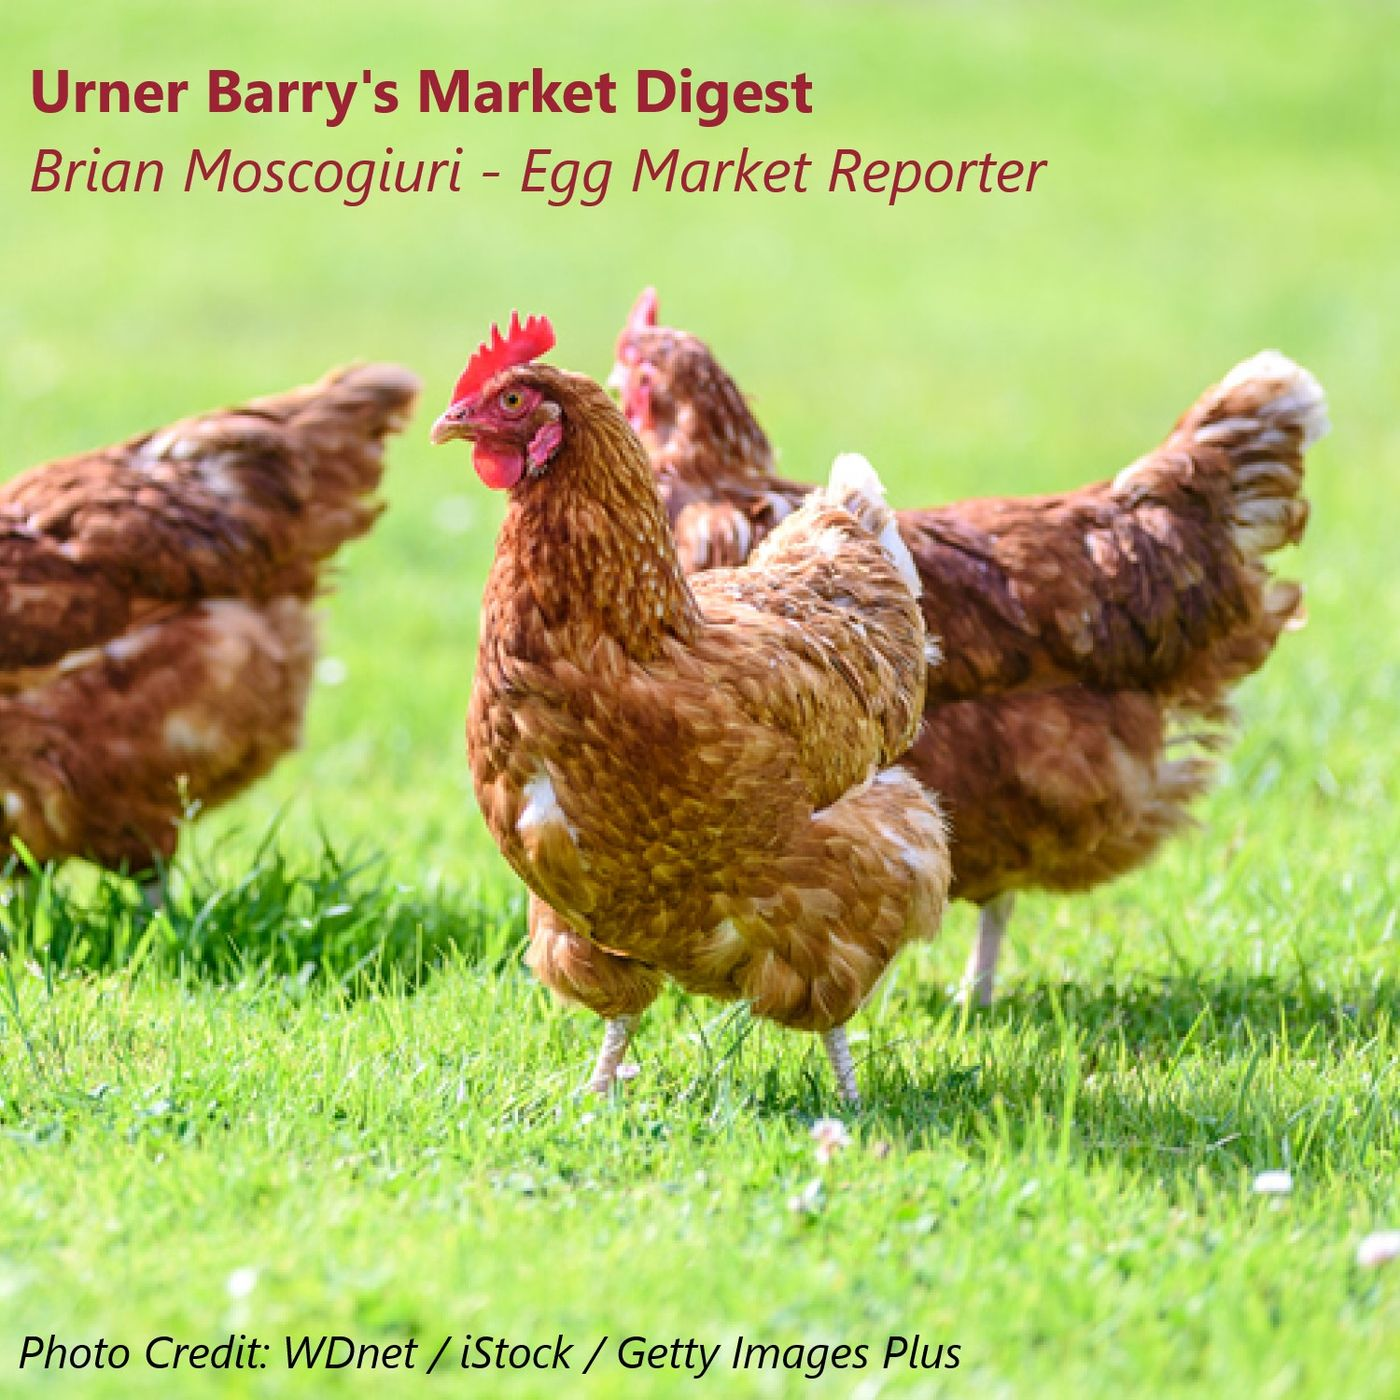 Rolling with the Punches: Cage-Free Expansions and More Impacting the Egg Market